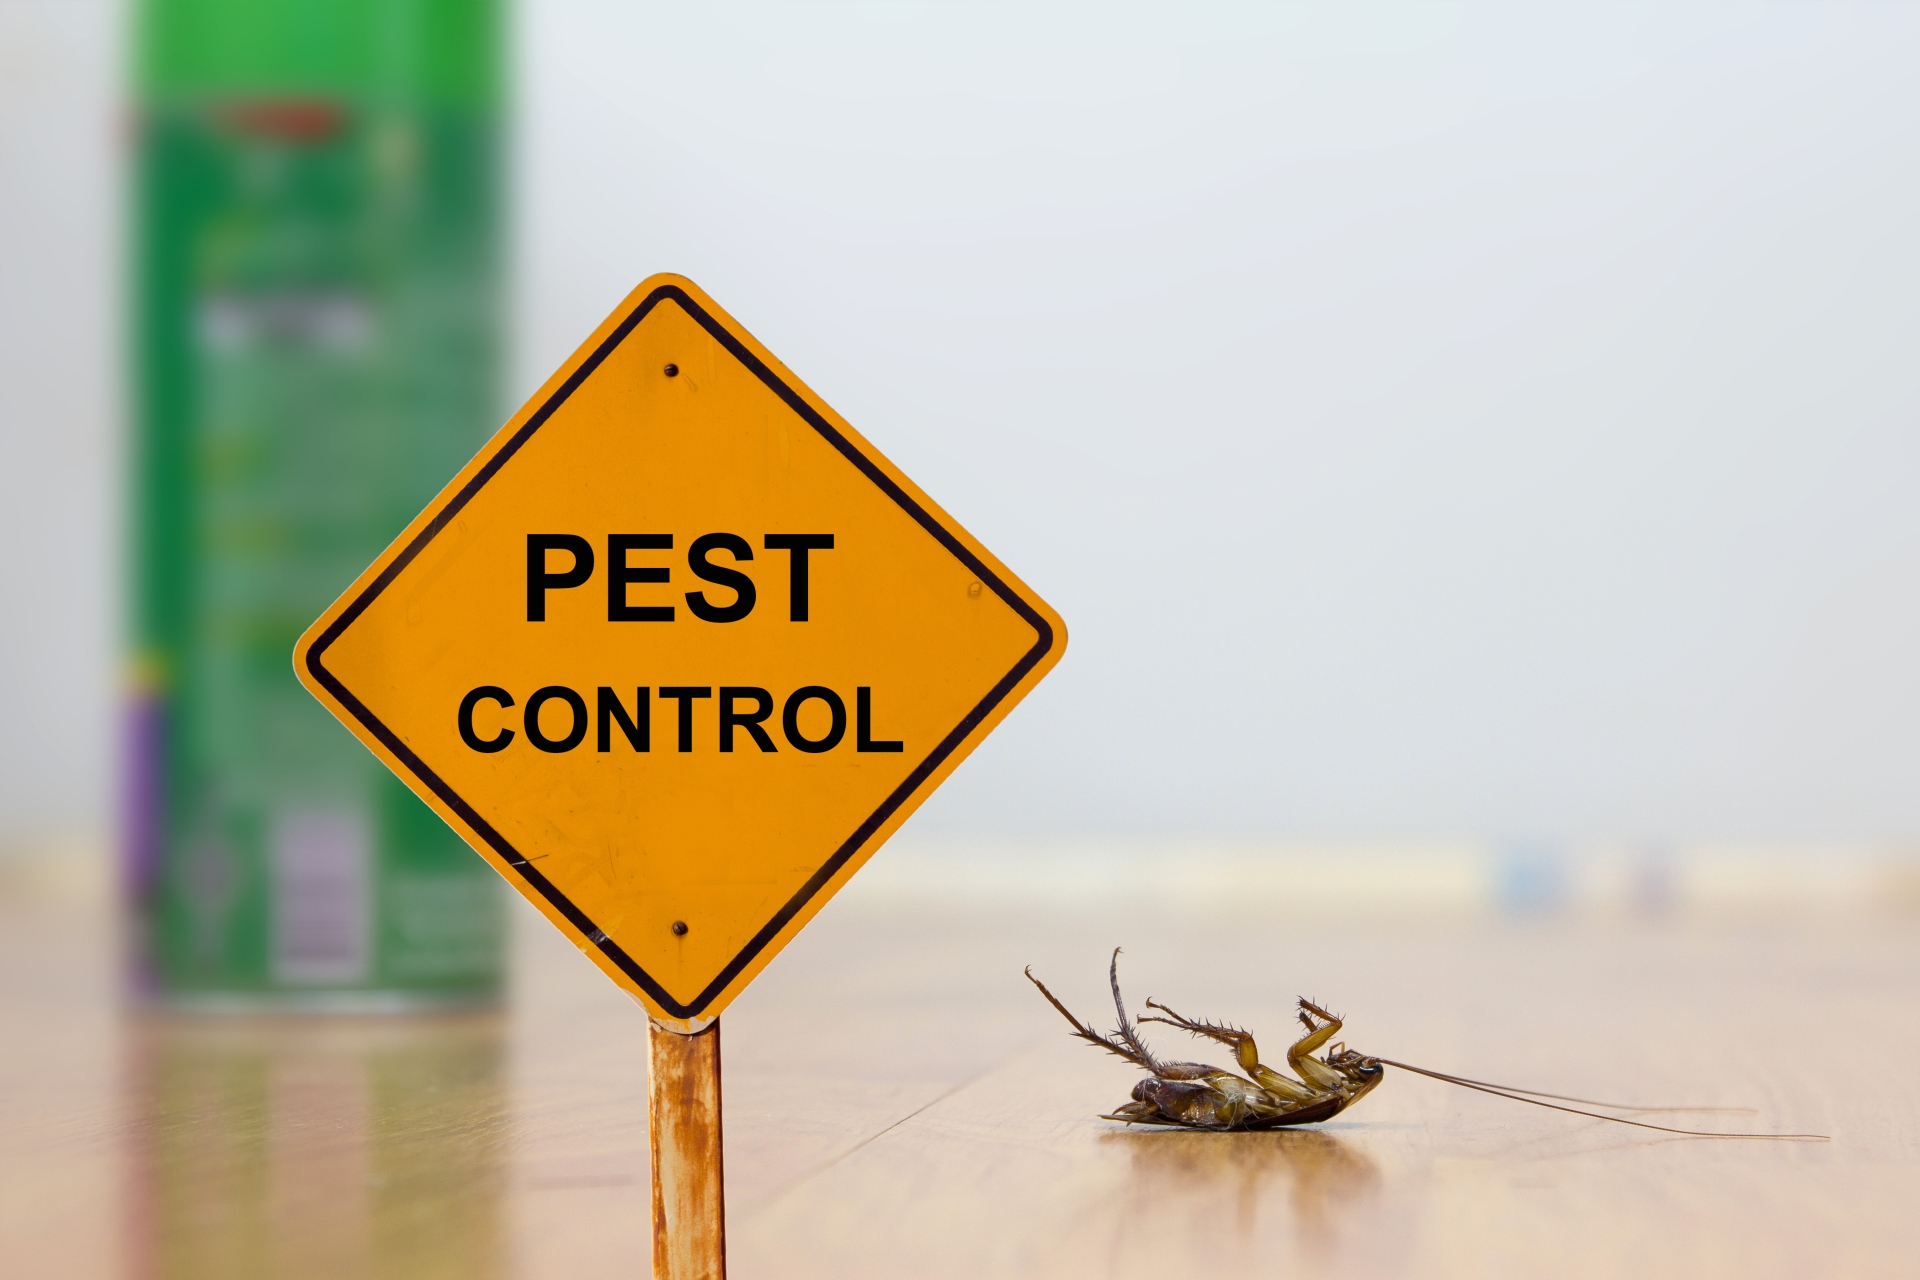 24 Hour Pest Control, Pest Control in Chiswick, W4. Call Now 020 8166 9746